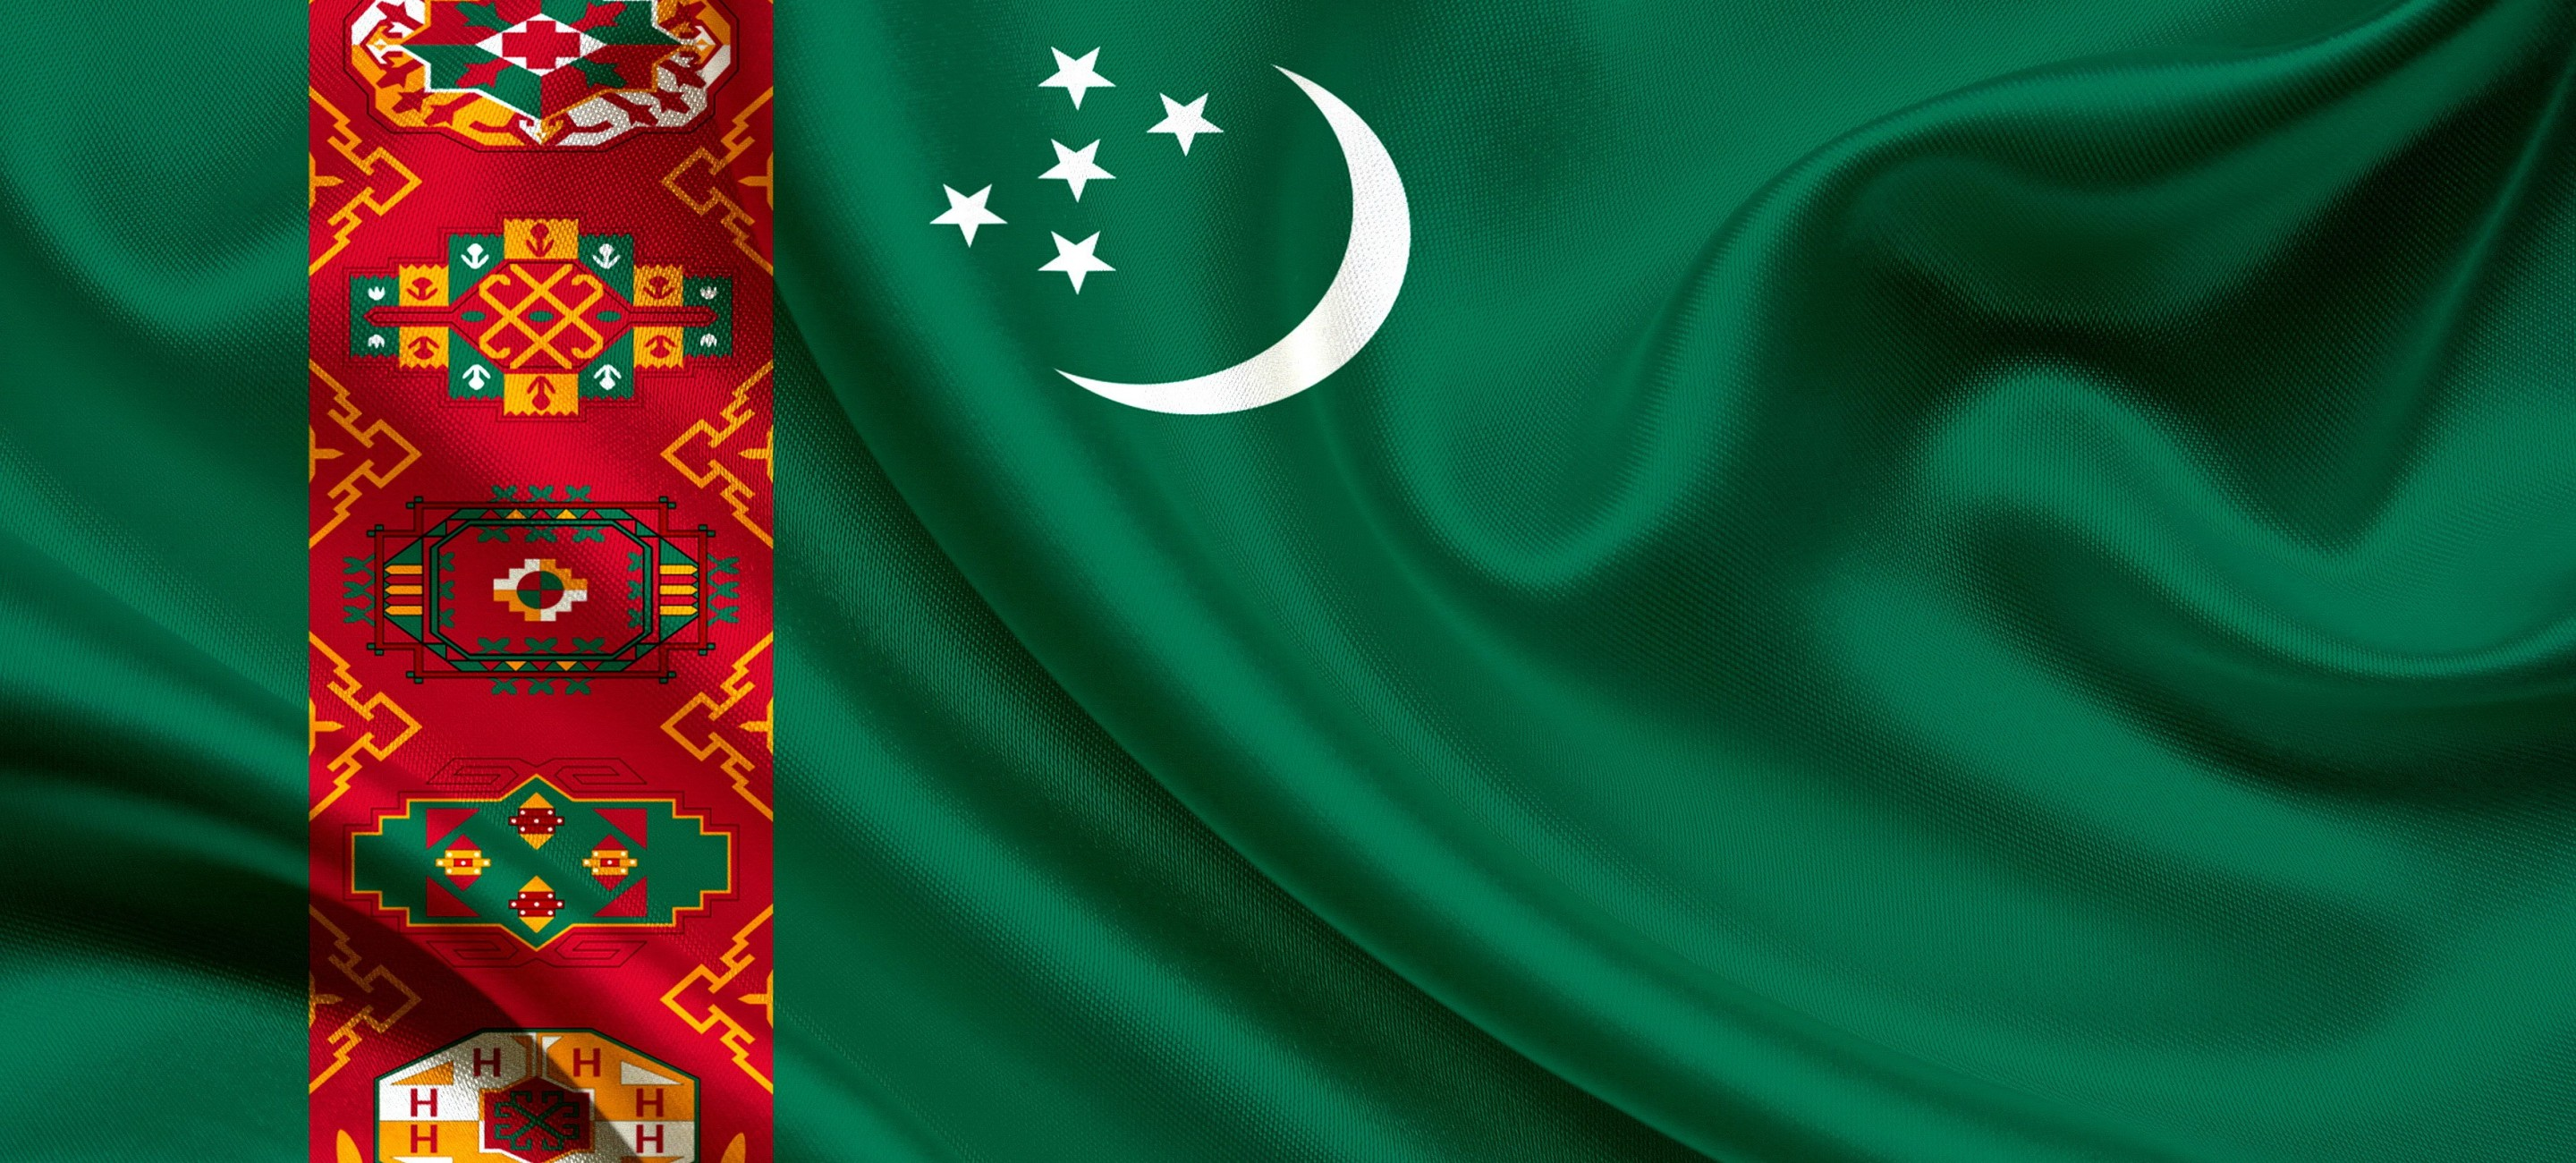 Registered candidates for the Presidential elections of Turkmenistan